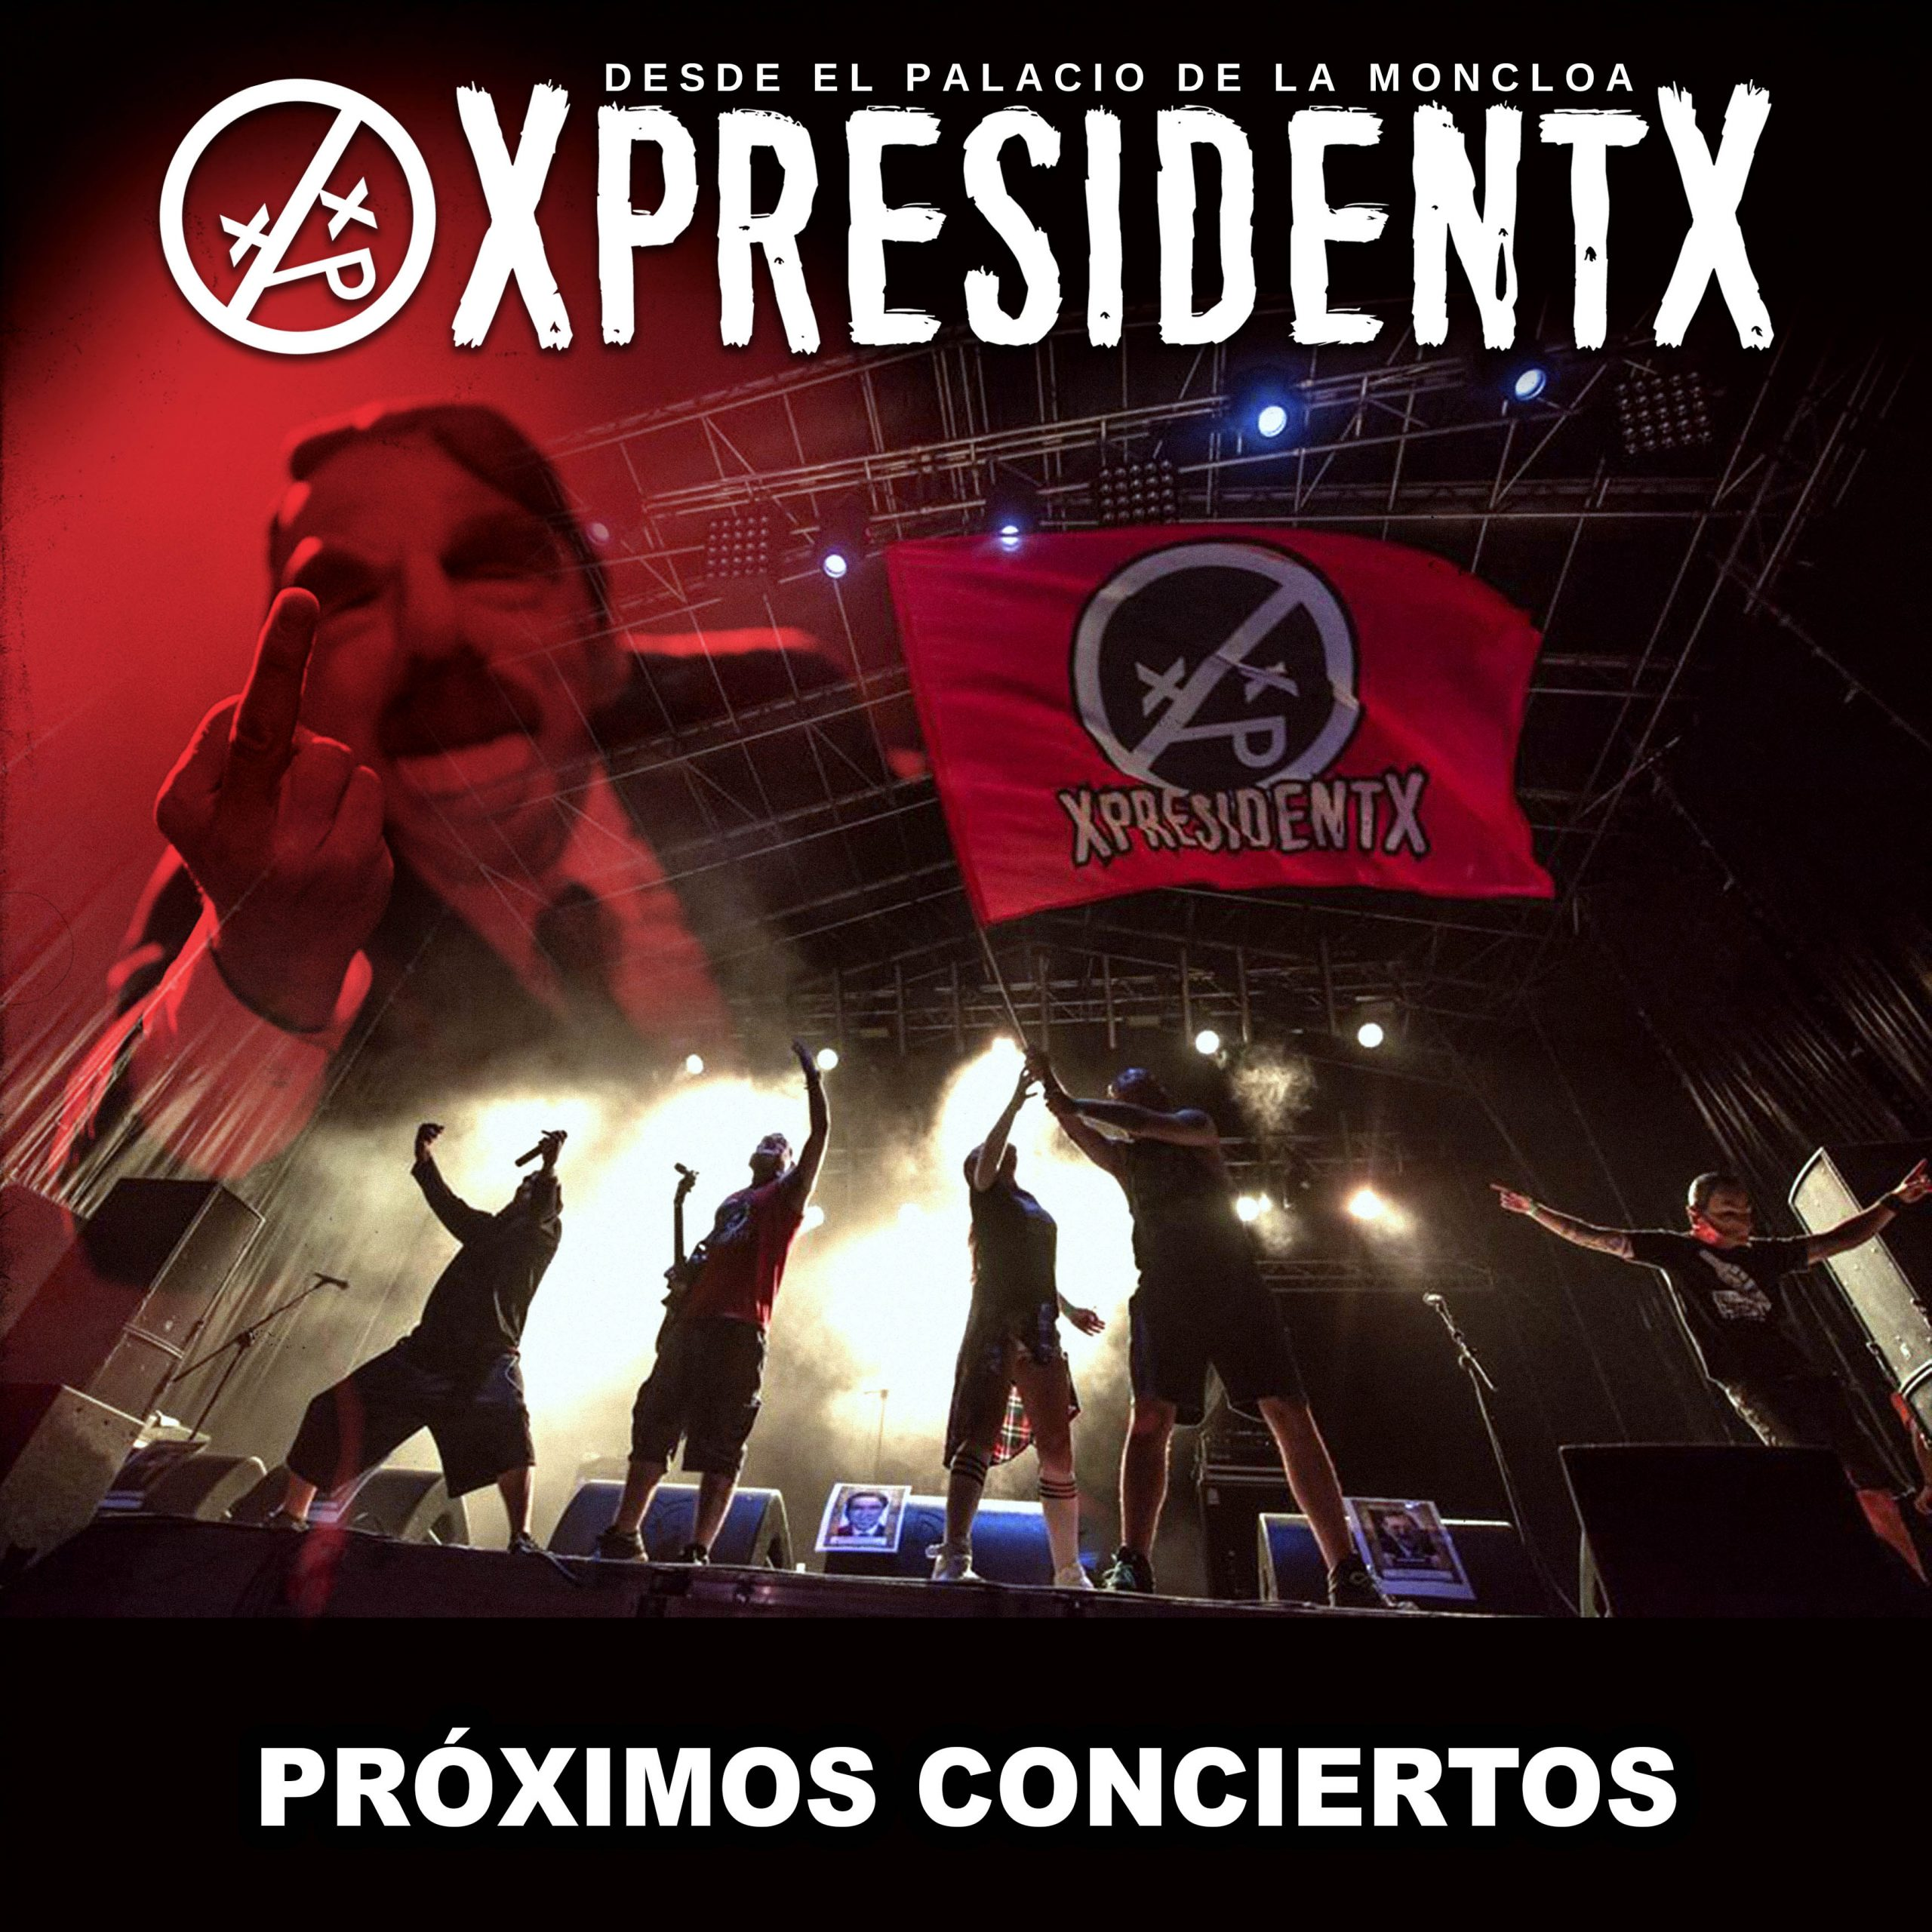 XpresidentX proximos conciertos rap metal punk rapmetal